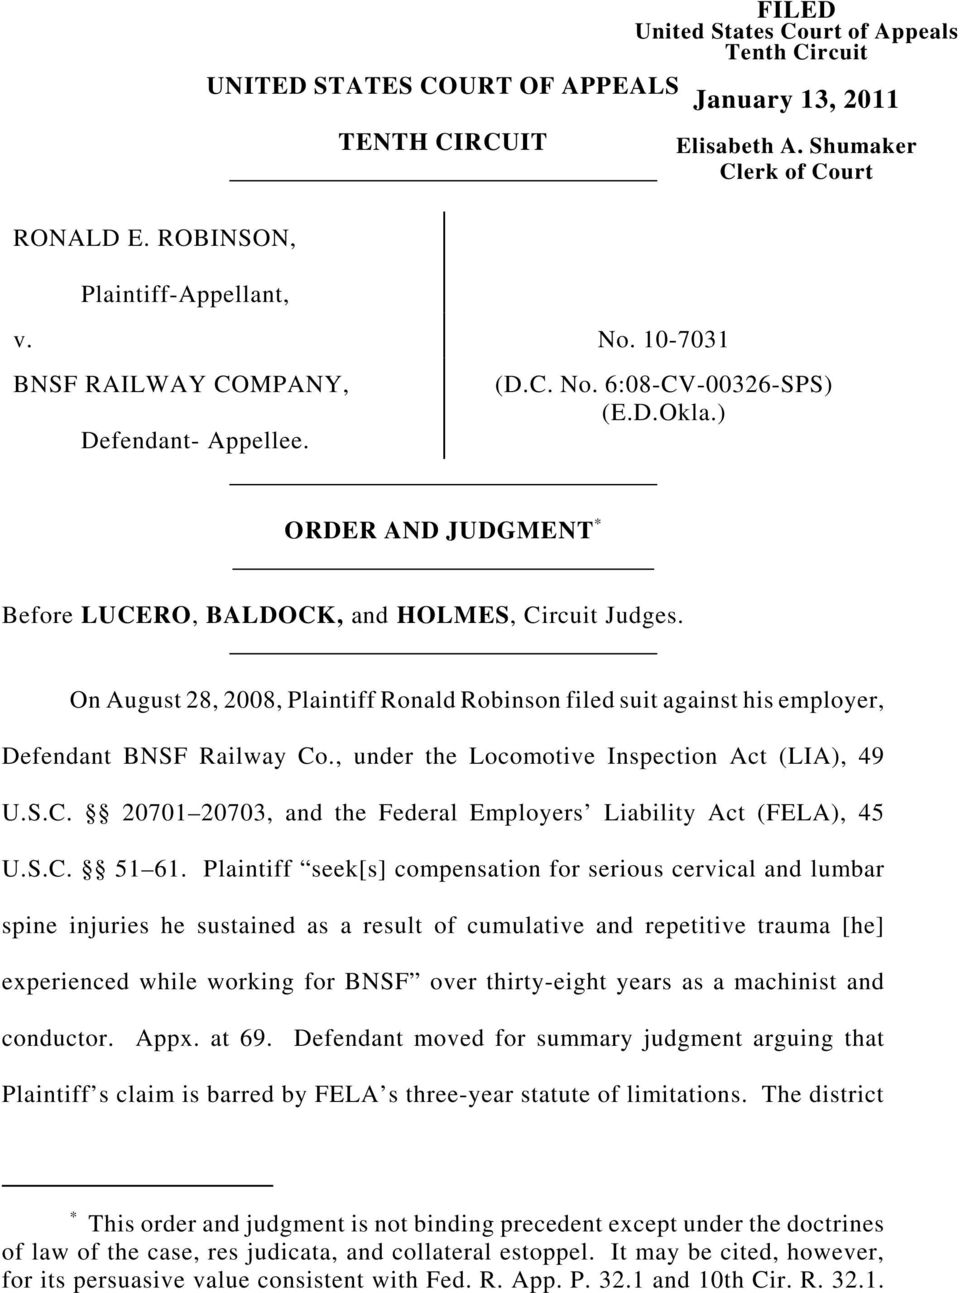 On August 28, 2008, Plaintiff Ronald Robinson filed suit against his employer, Defendant BNSF Railway Co., under the Locomotive Inspection Act (LIA), 49 U.S.C. 20701 20703, and the Federal Employers Liability Act (FELA), 45 U.